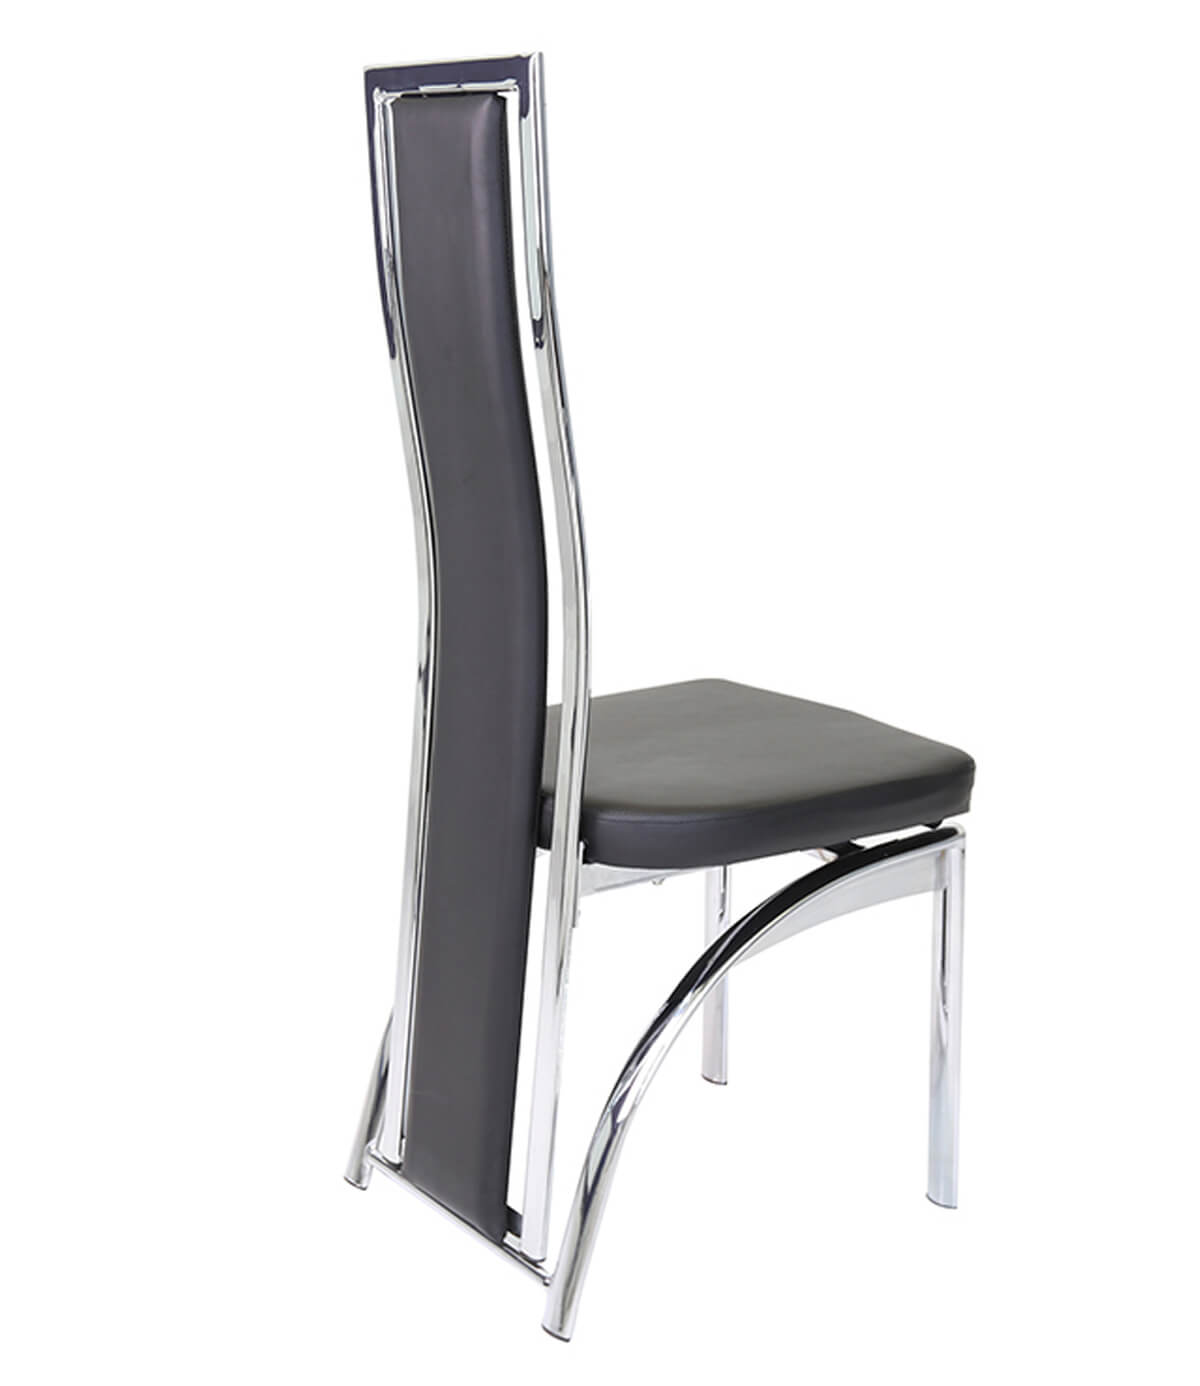 chrome dining chairs uk desk chair ideas manchester furniture supplies